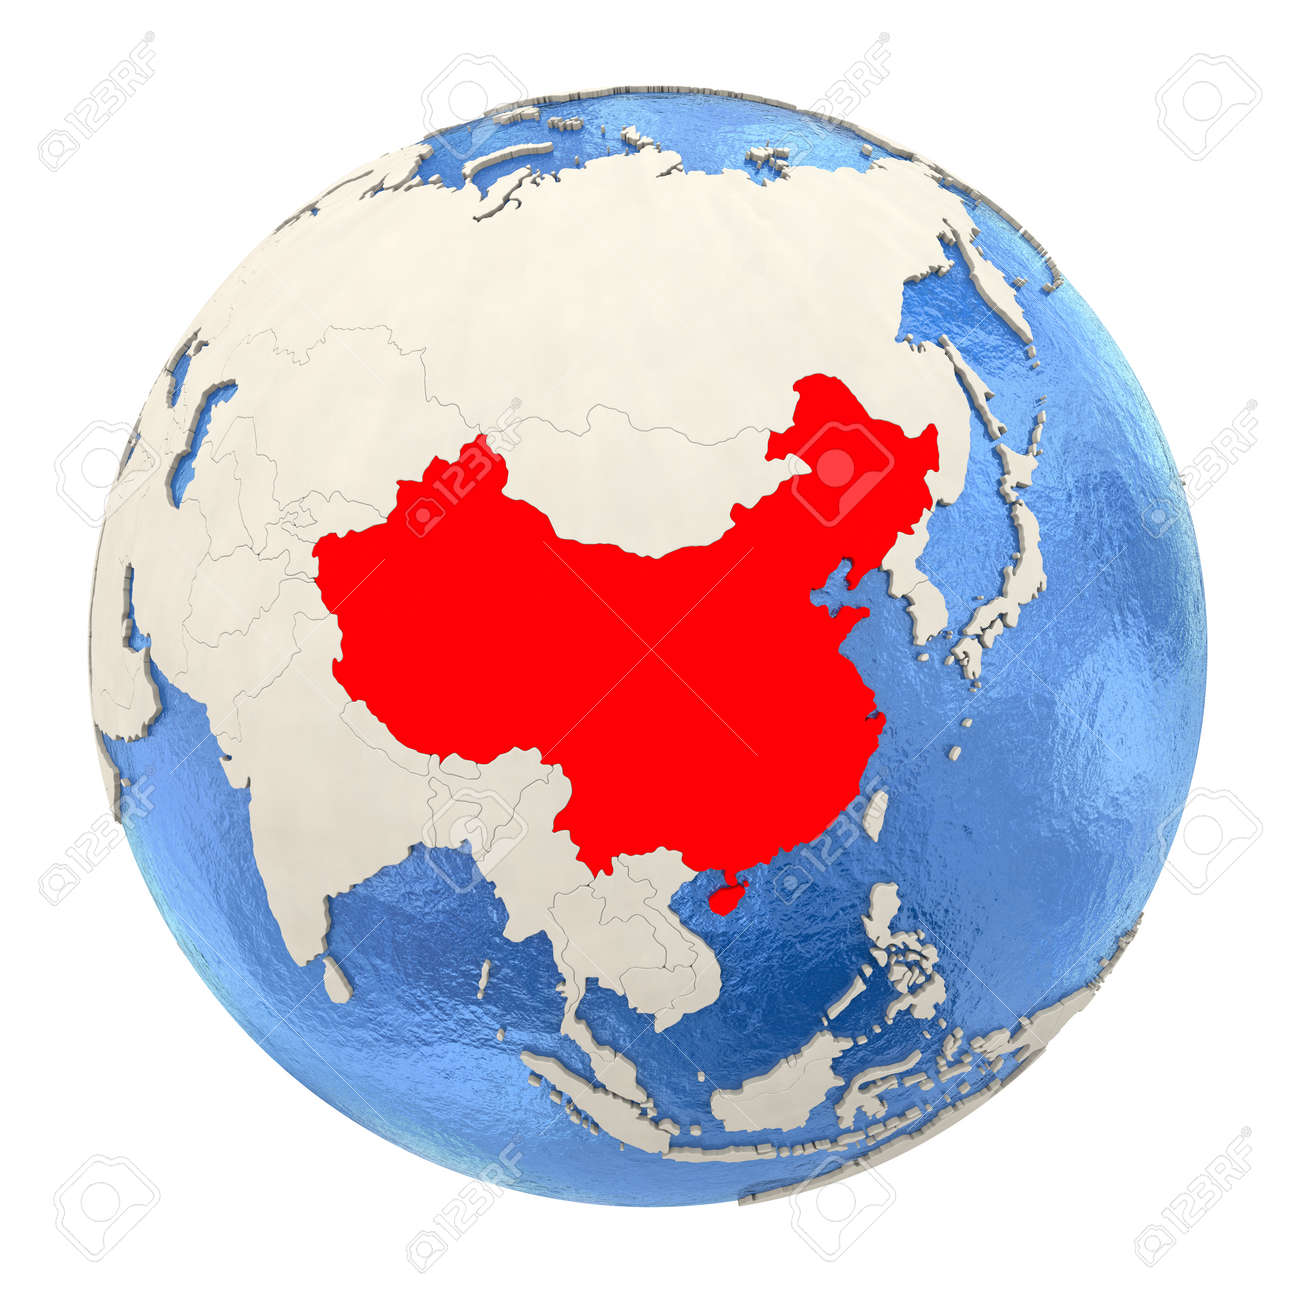 Stock Illustration on chinese language in the world, china map business, china map market, china map art, home in the world, china map india, china map europe, china map design, costa rica in the world, china map easy, china map religion, china map cities, china map love, china map region, china map history,